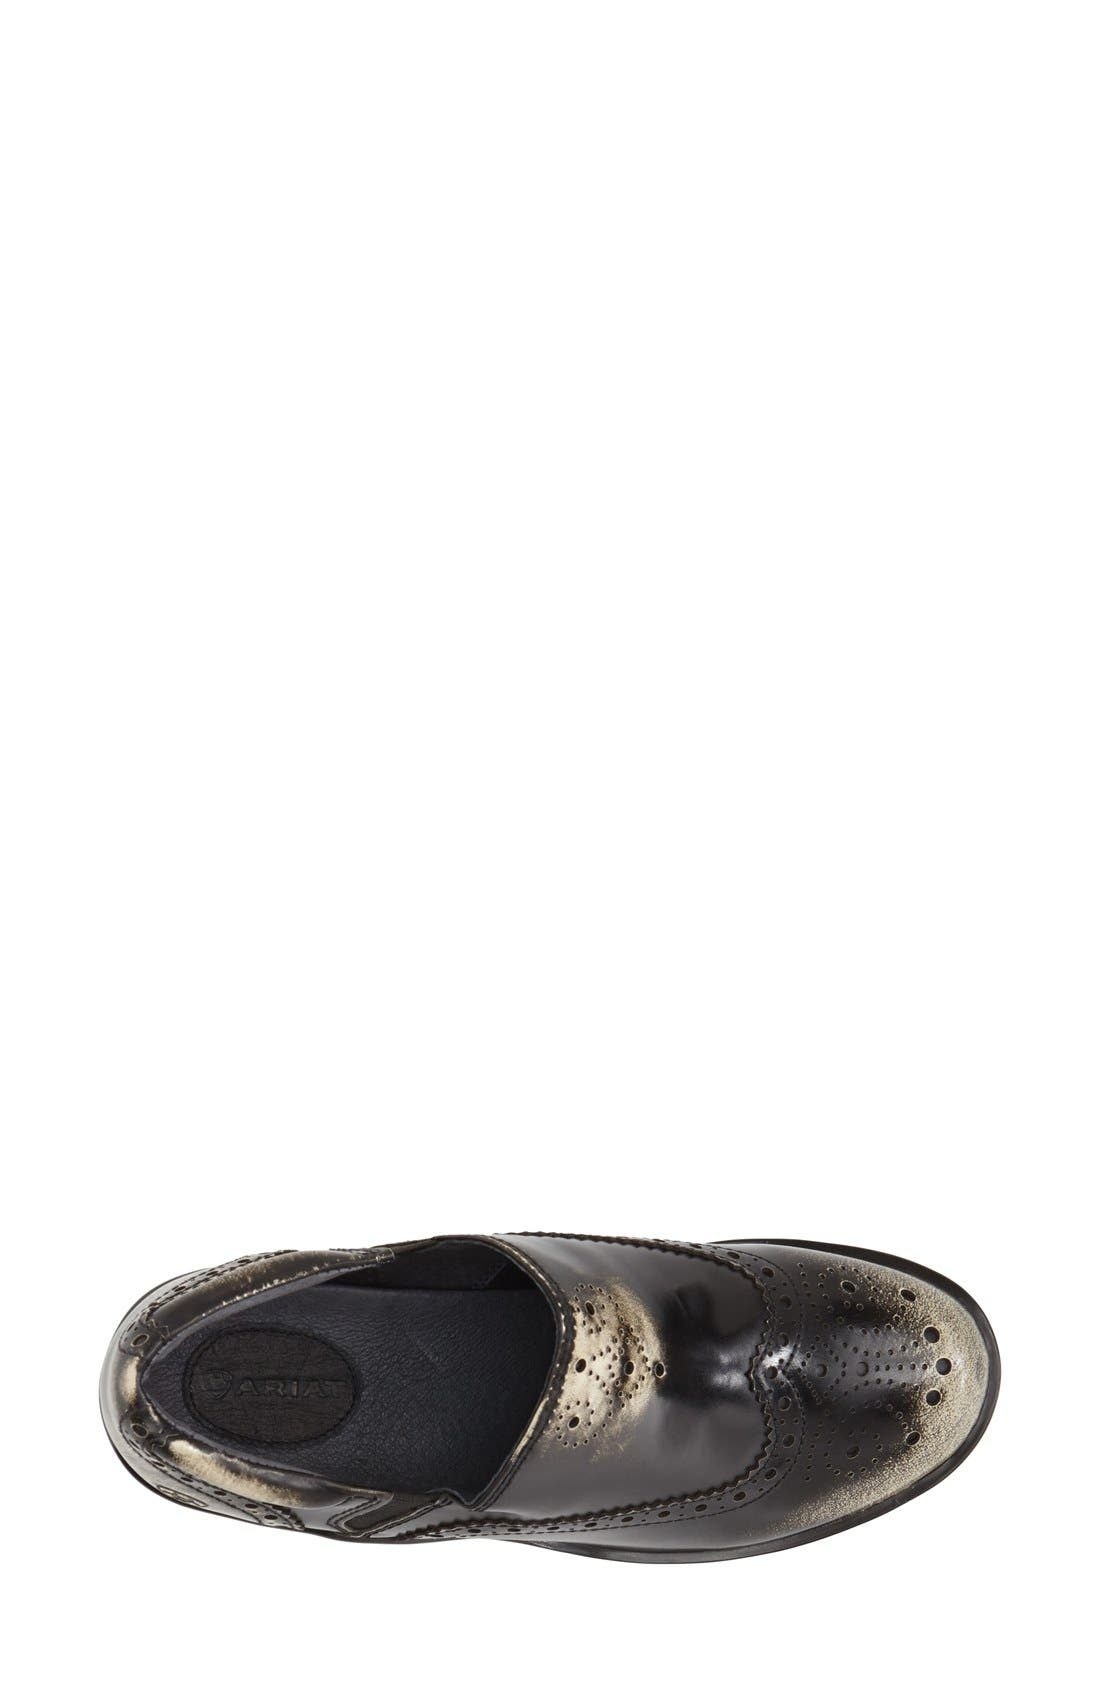 Alternate Image 3  - Ariat 'Bradford' Clog (Women)